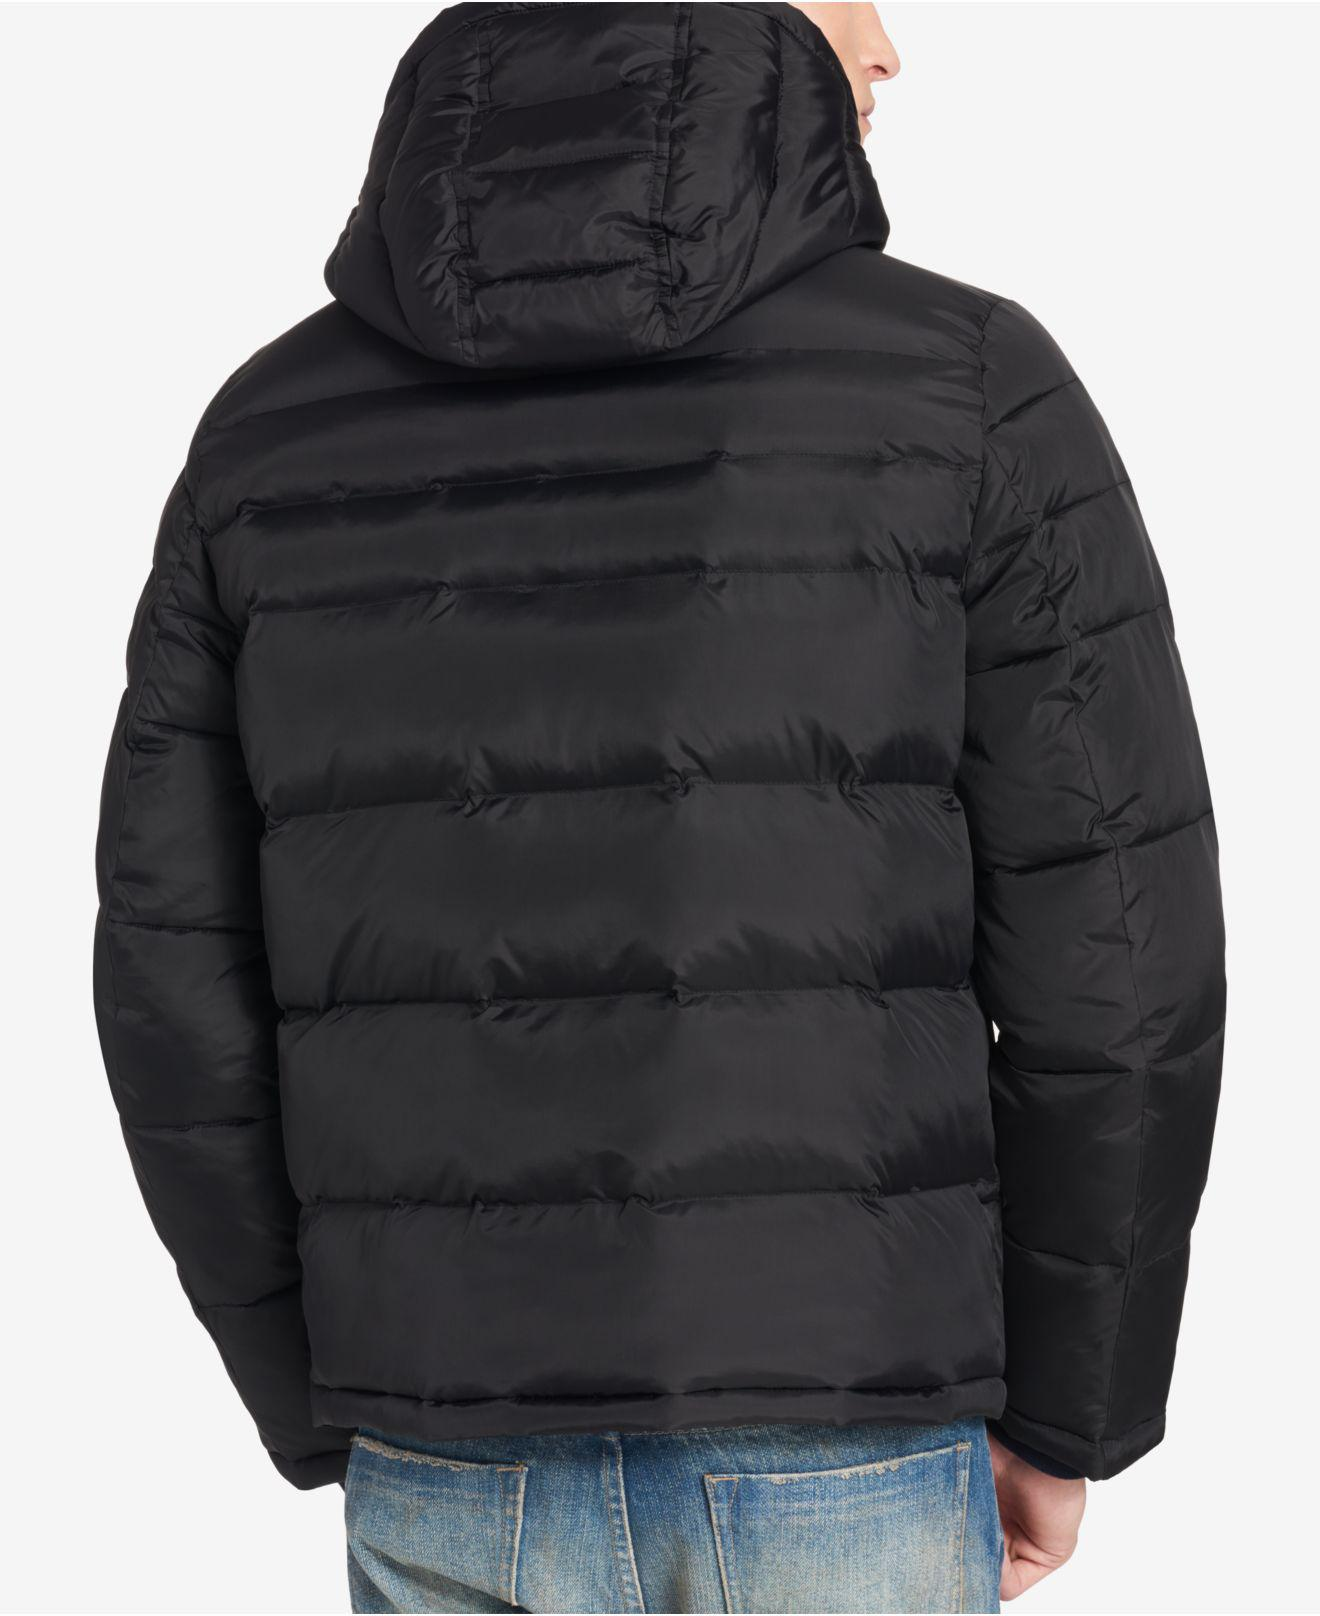 7fca8b53 Lyst - Tommy Hilfiger Quilted Puffer Jacket, Created For Macy's in Black  for Men - Save 28.888888888888886%